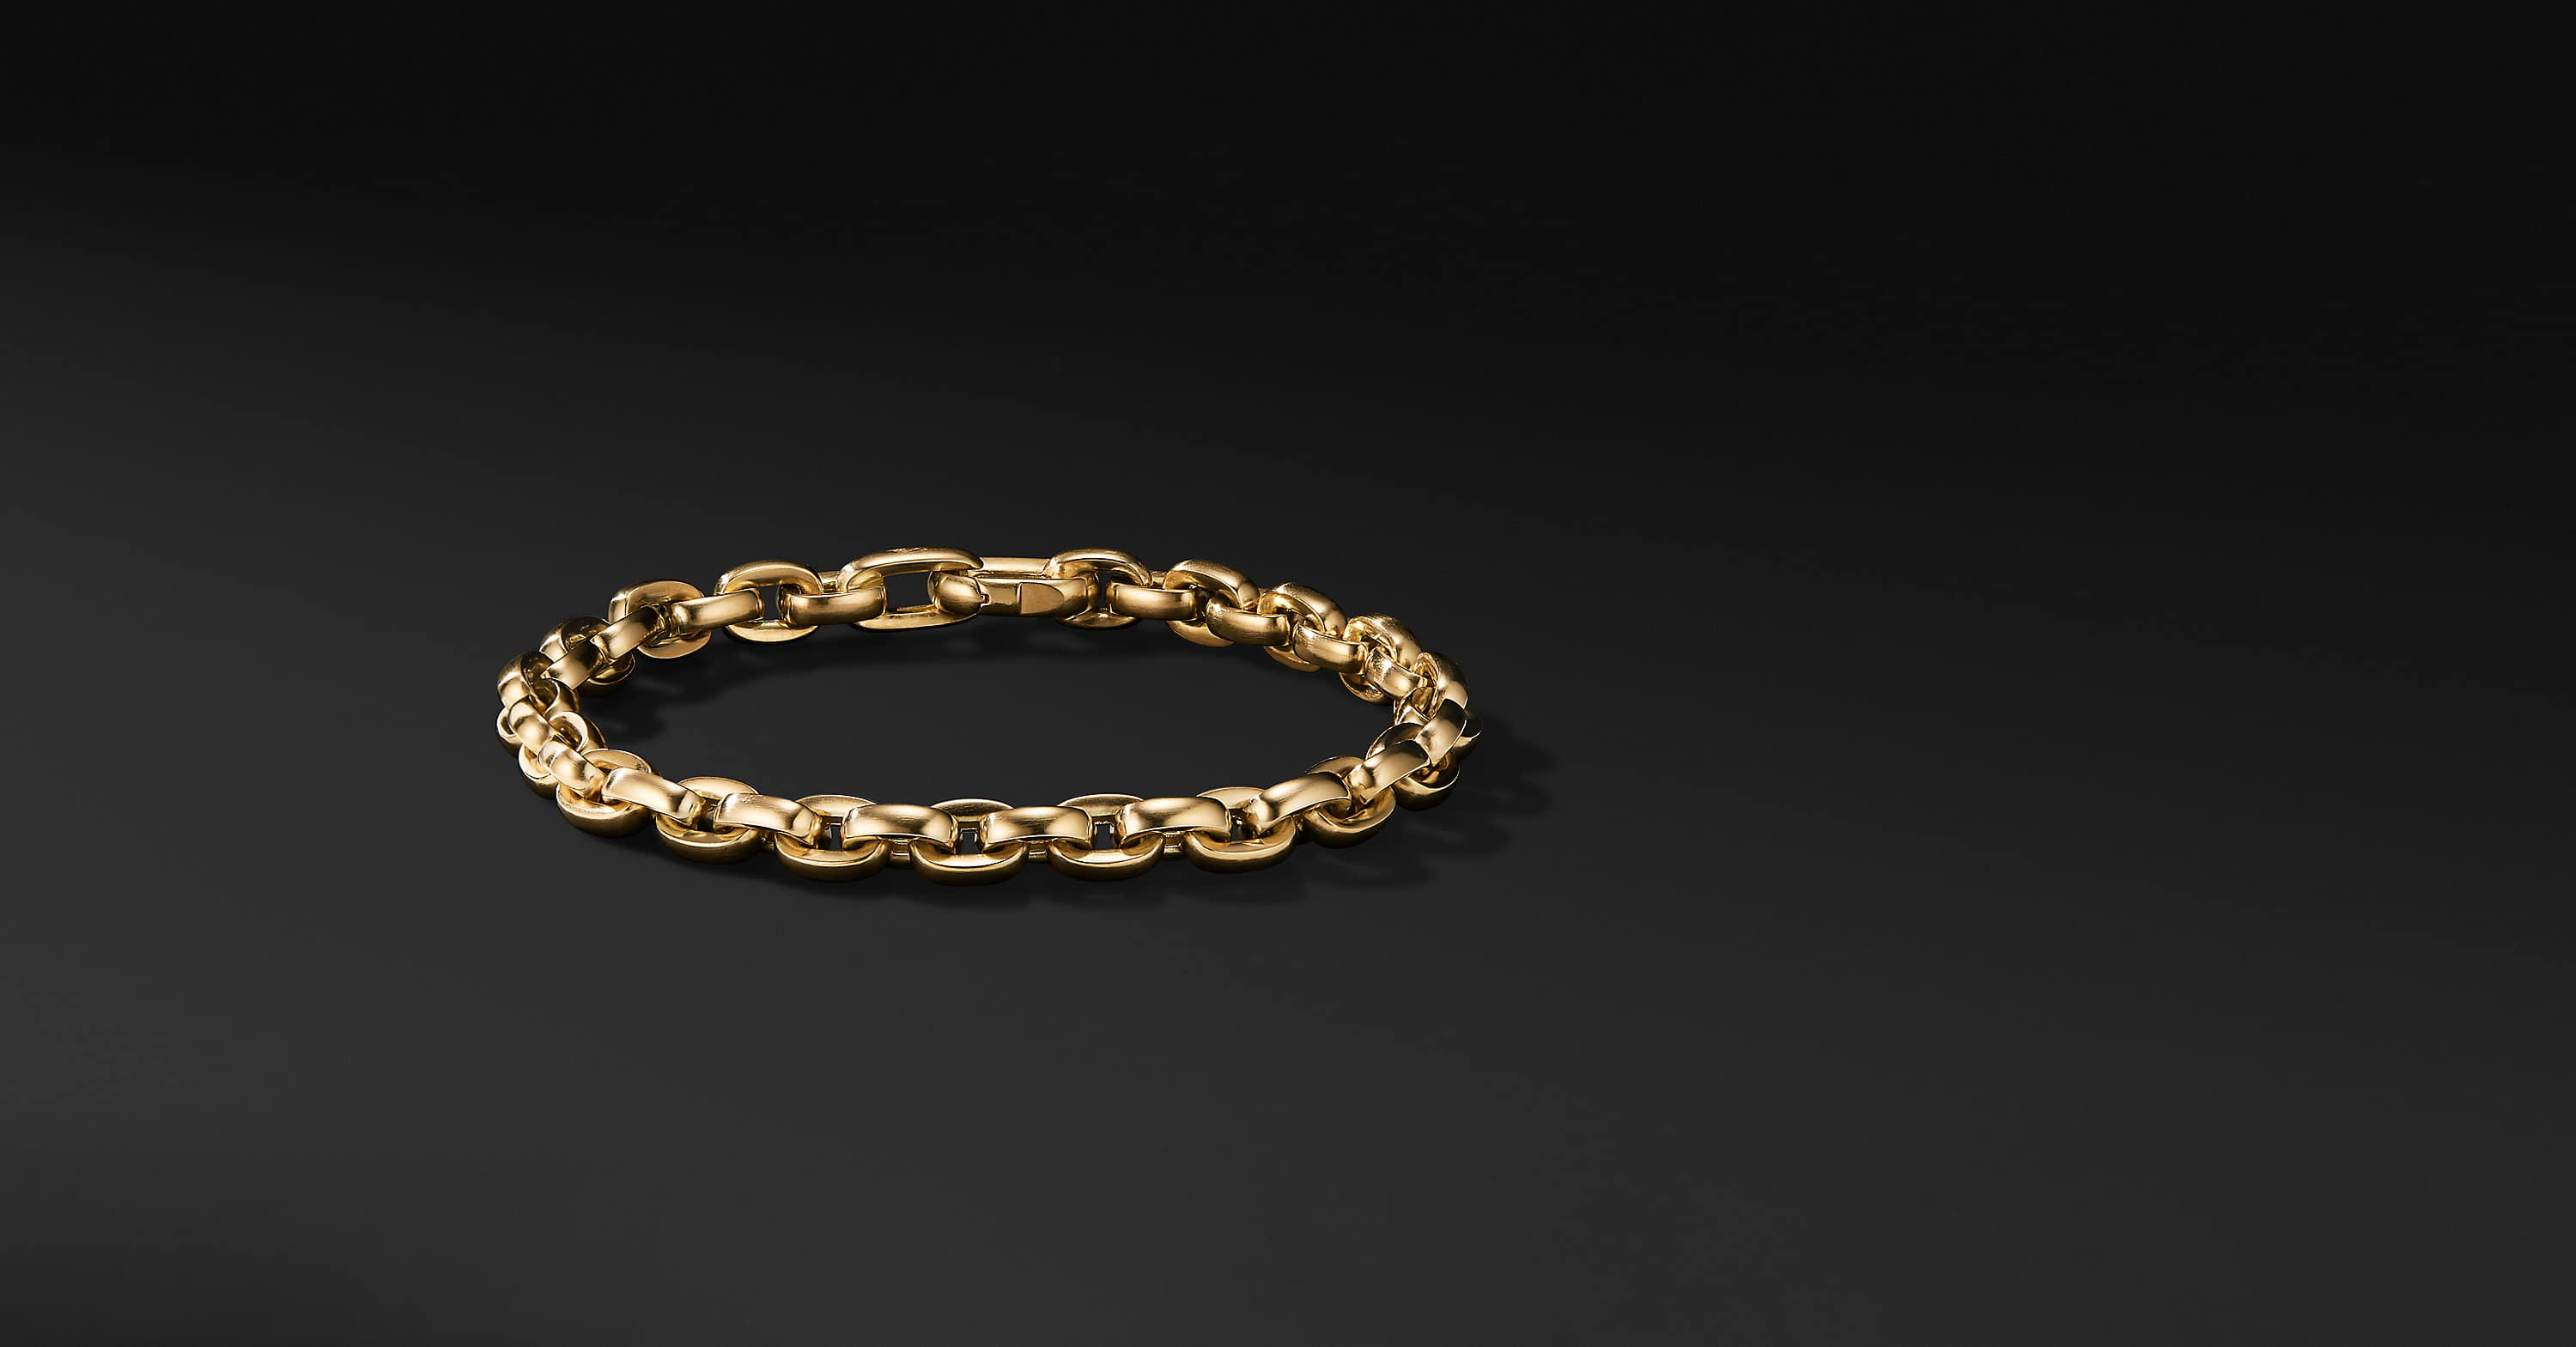 Streamline Chain Bracelet in 18K Yellow Gold